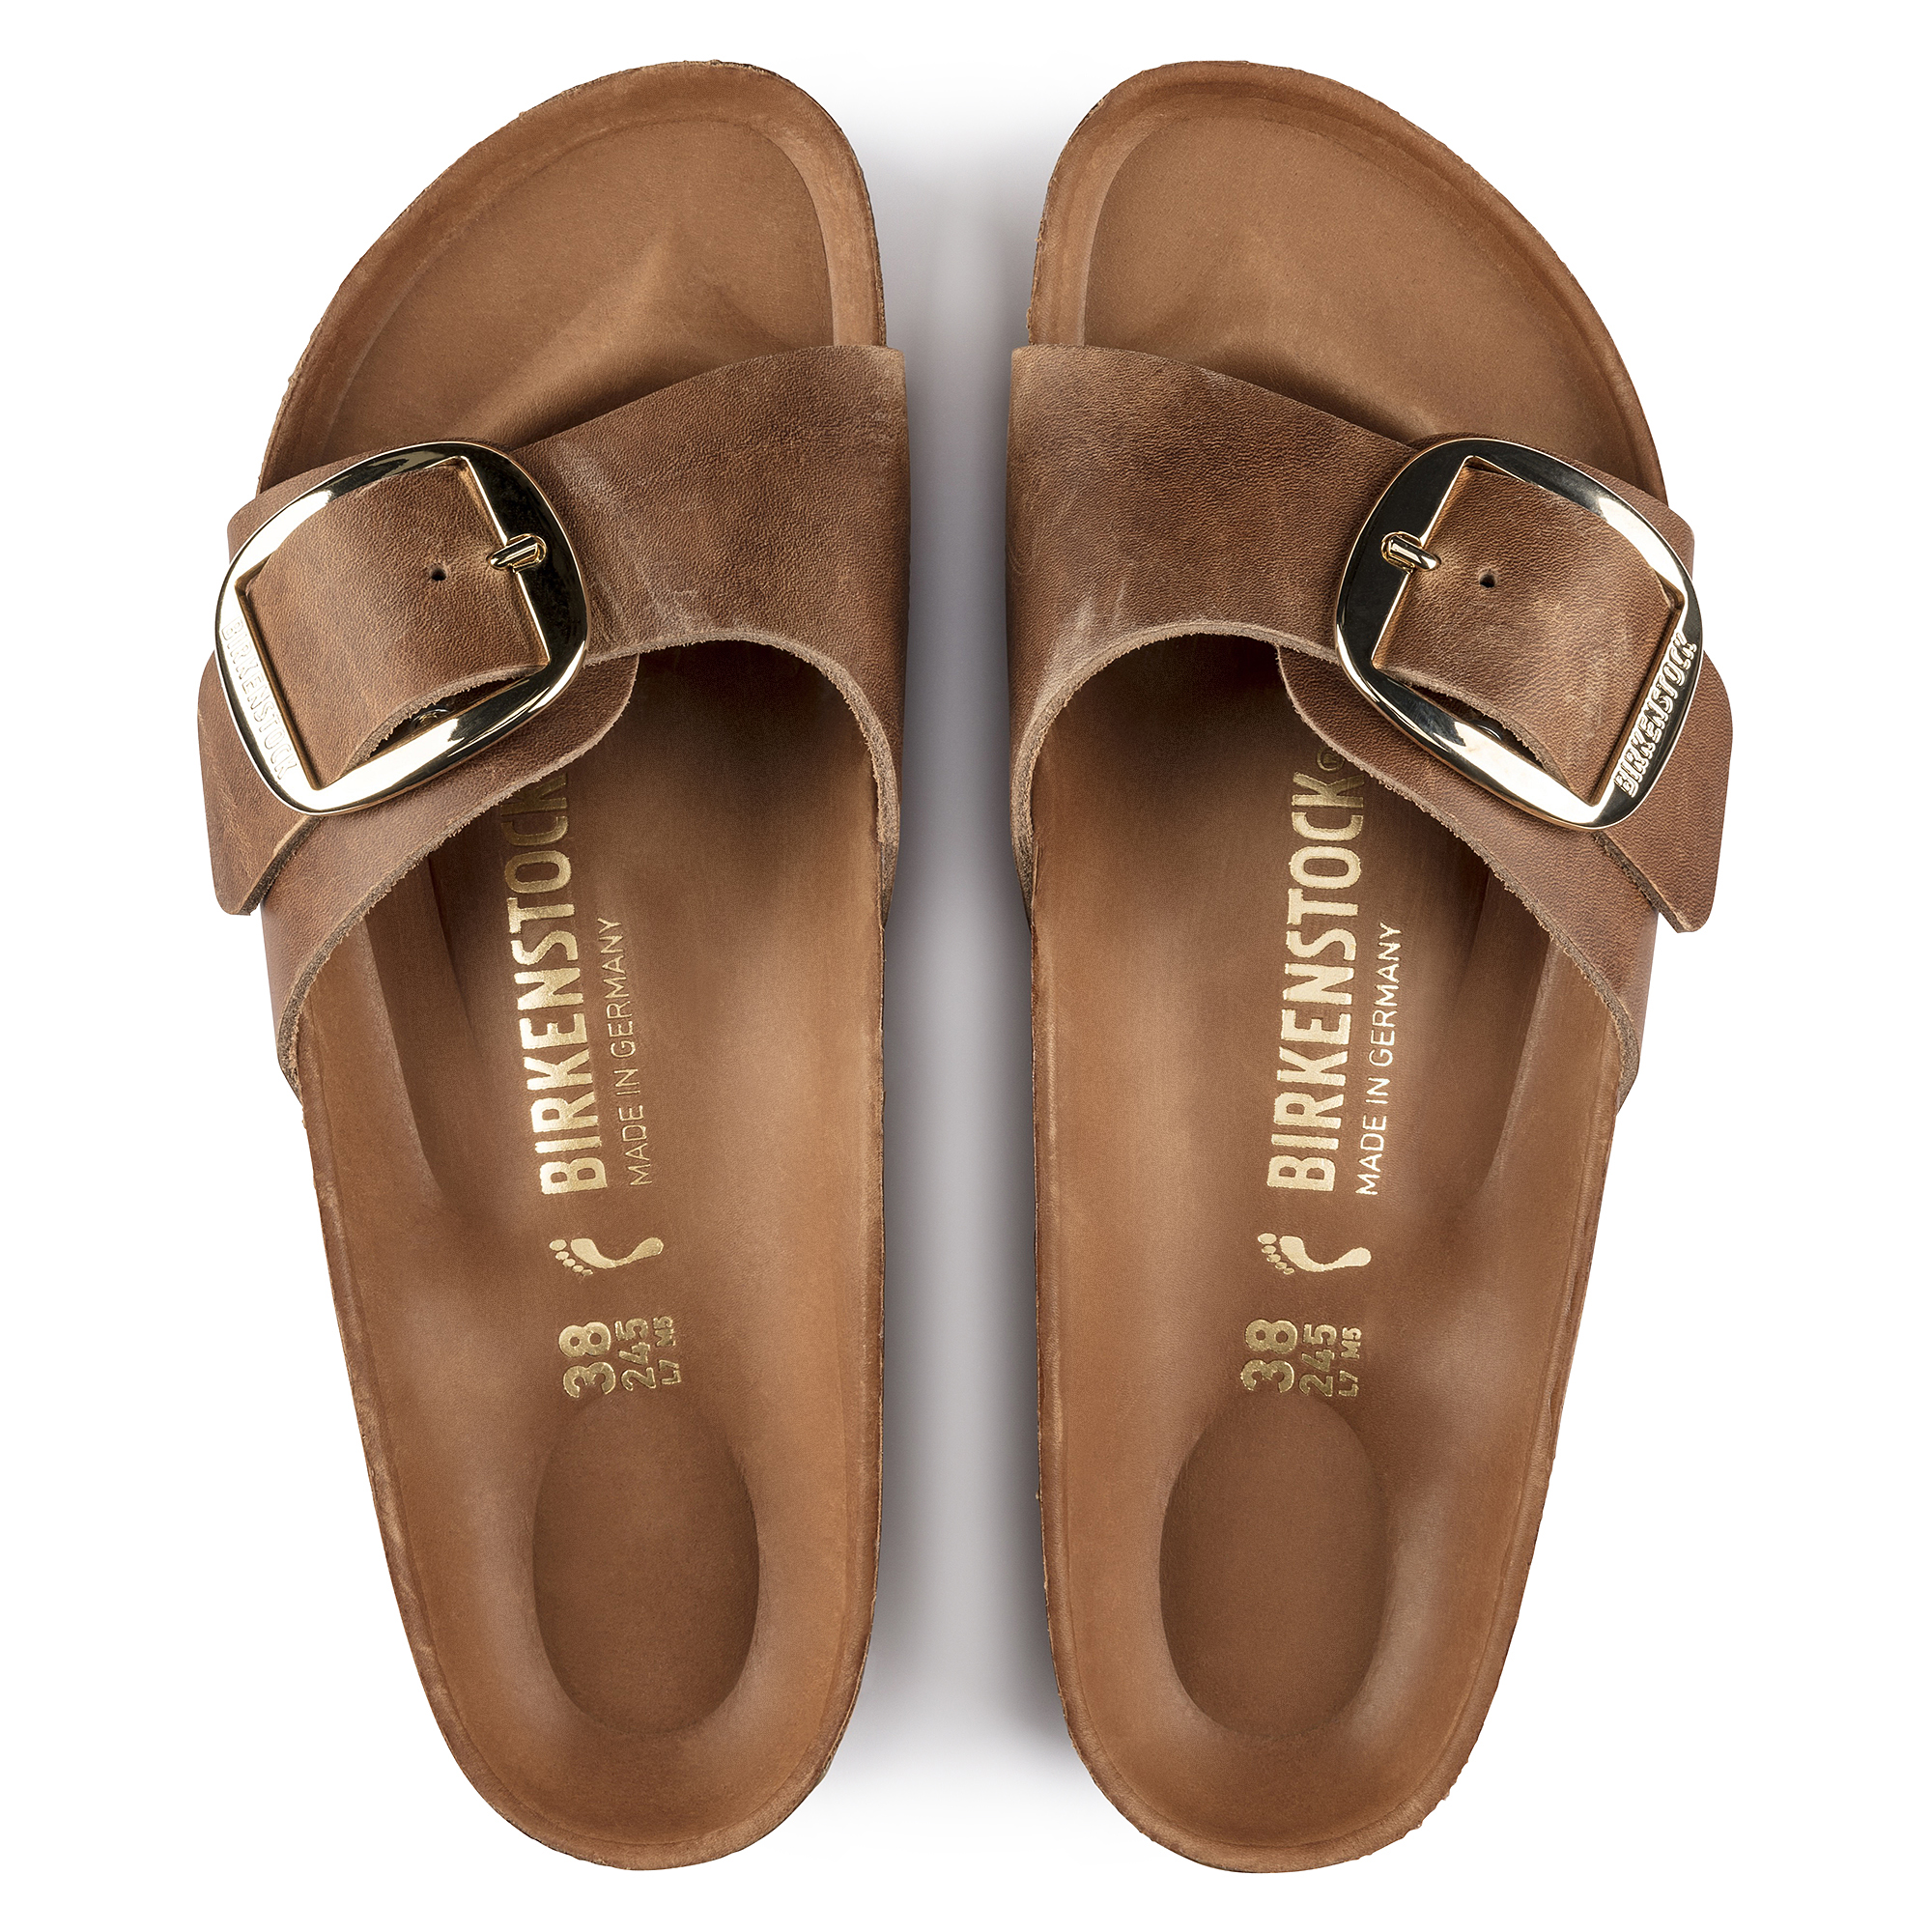 Madrid Oiled Leather | shop online at BIRKENSTOCK